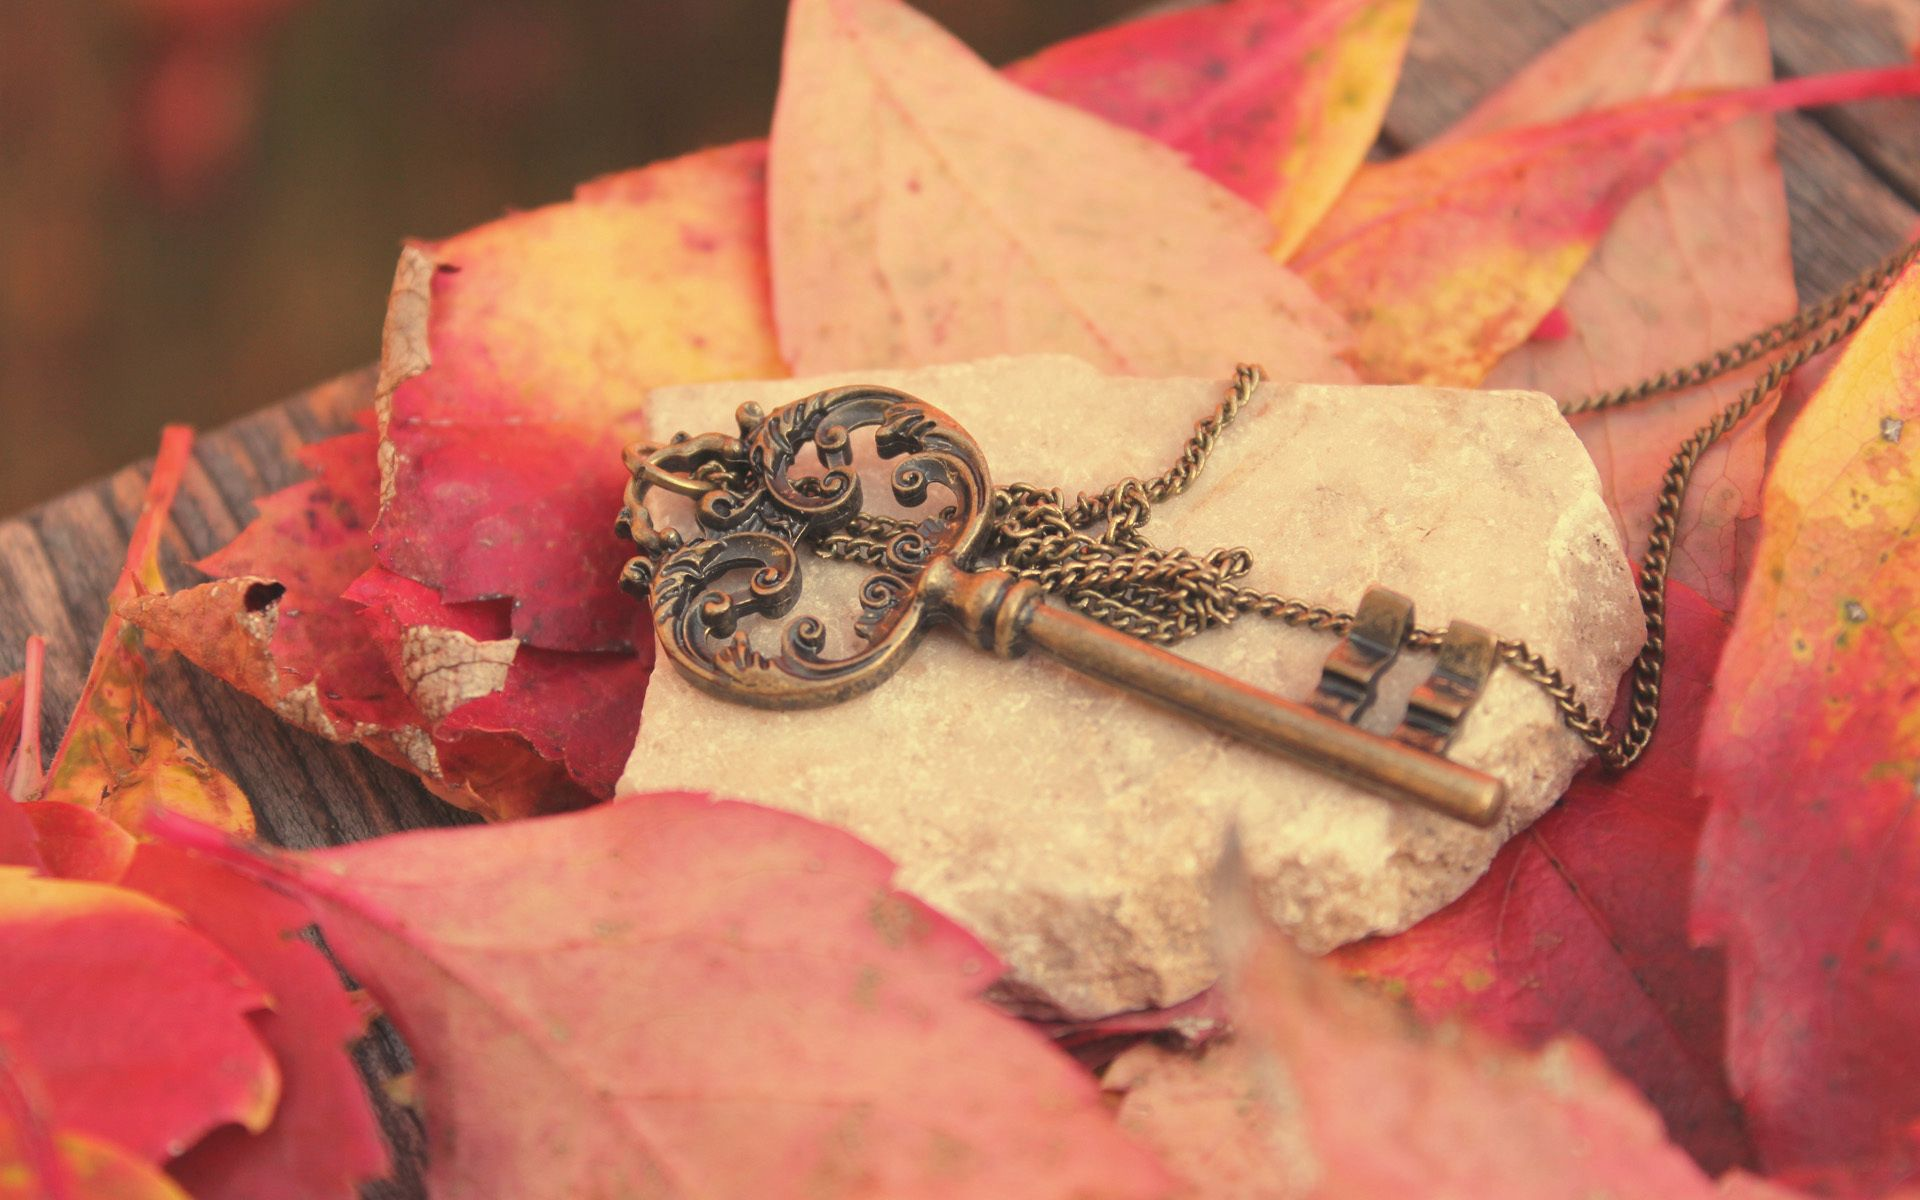 87565 download wallpaper Miscellanea, Miscellaneous, Key, Metal, Leaves, Autumn, Chain, Rock, Stone, Board screensavers and pictures for free